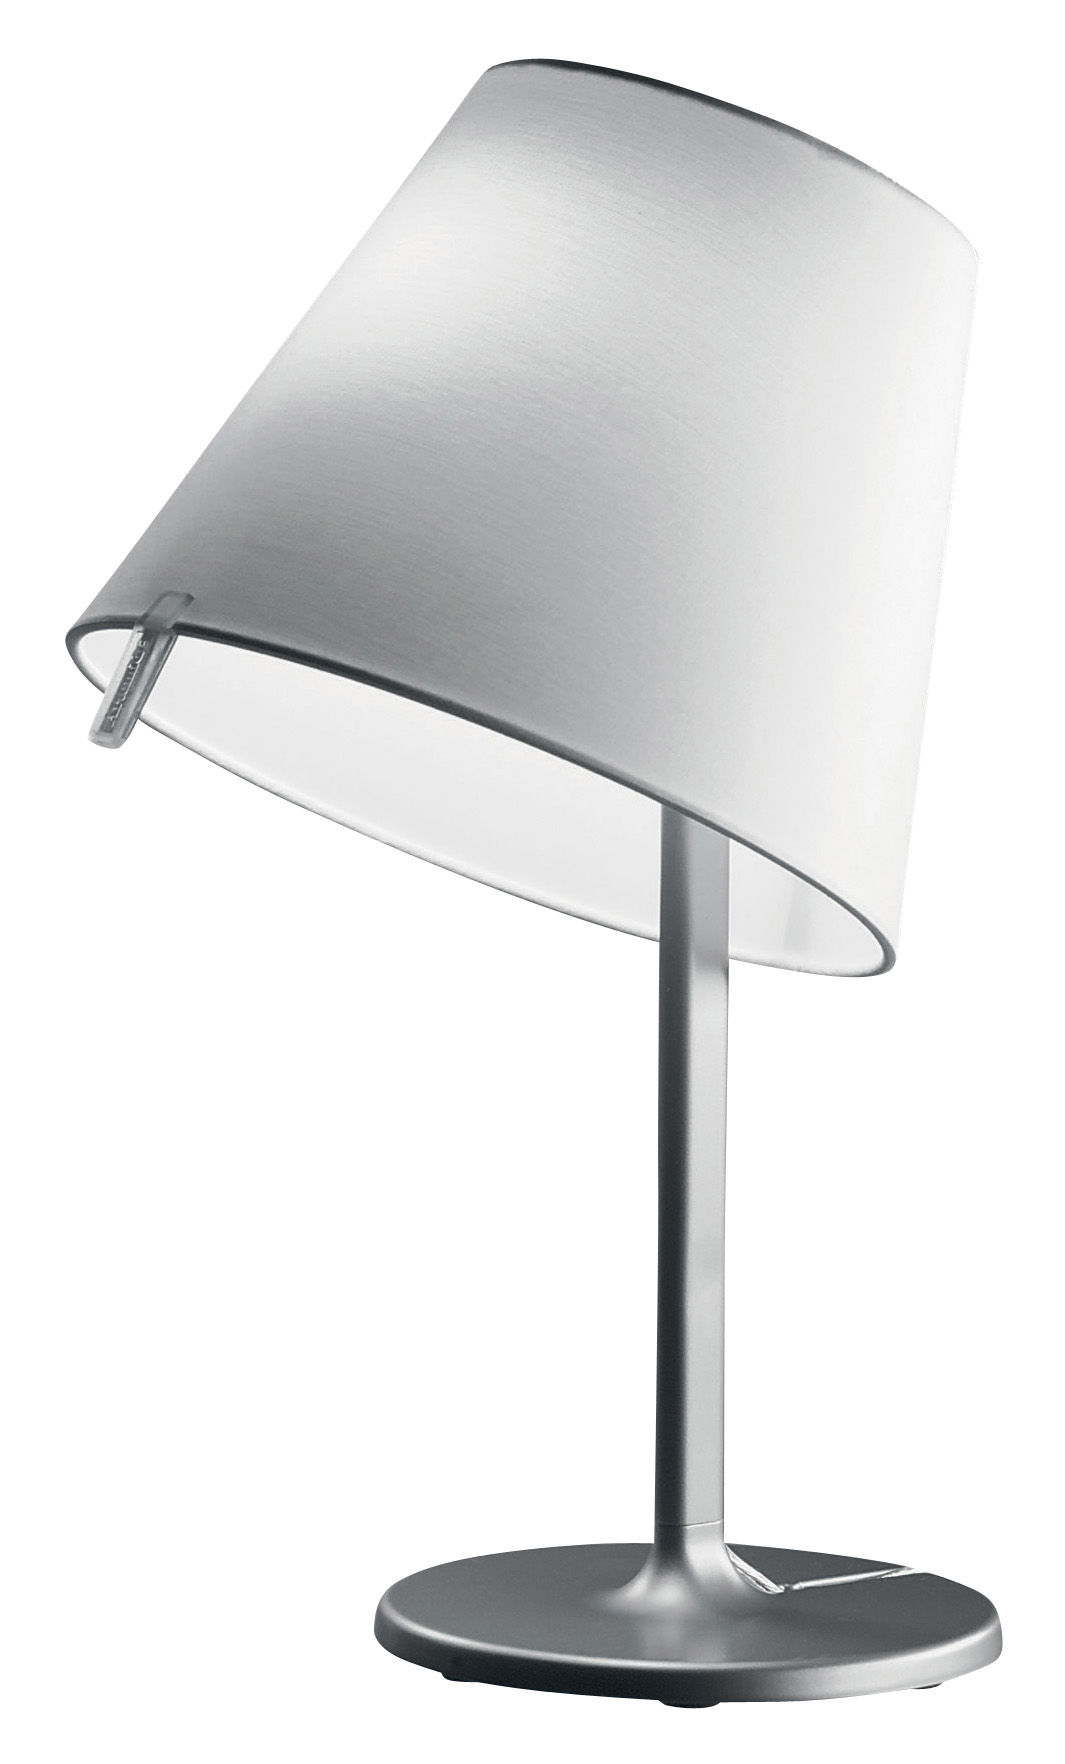 Lighting - Table Lamps - Melampo Notte Table lamp by Artemide - Aluminium grey - Metal, Satin